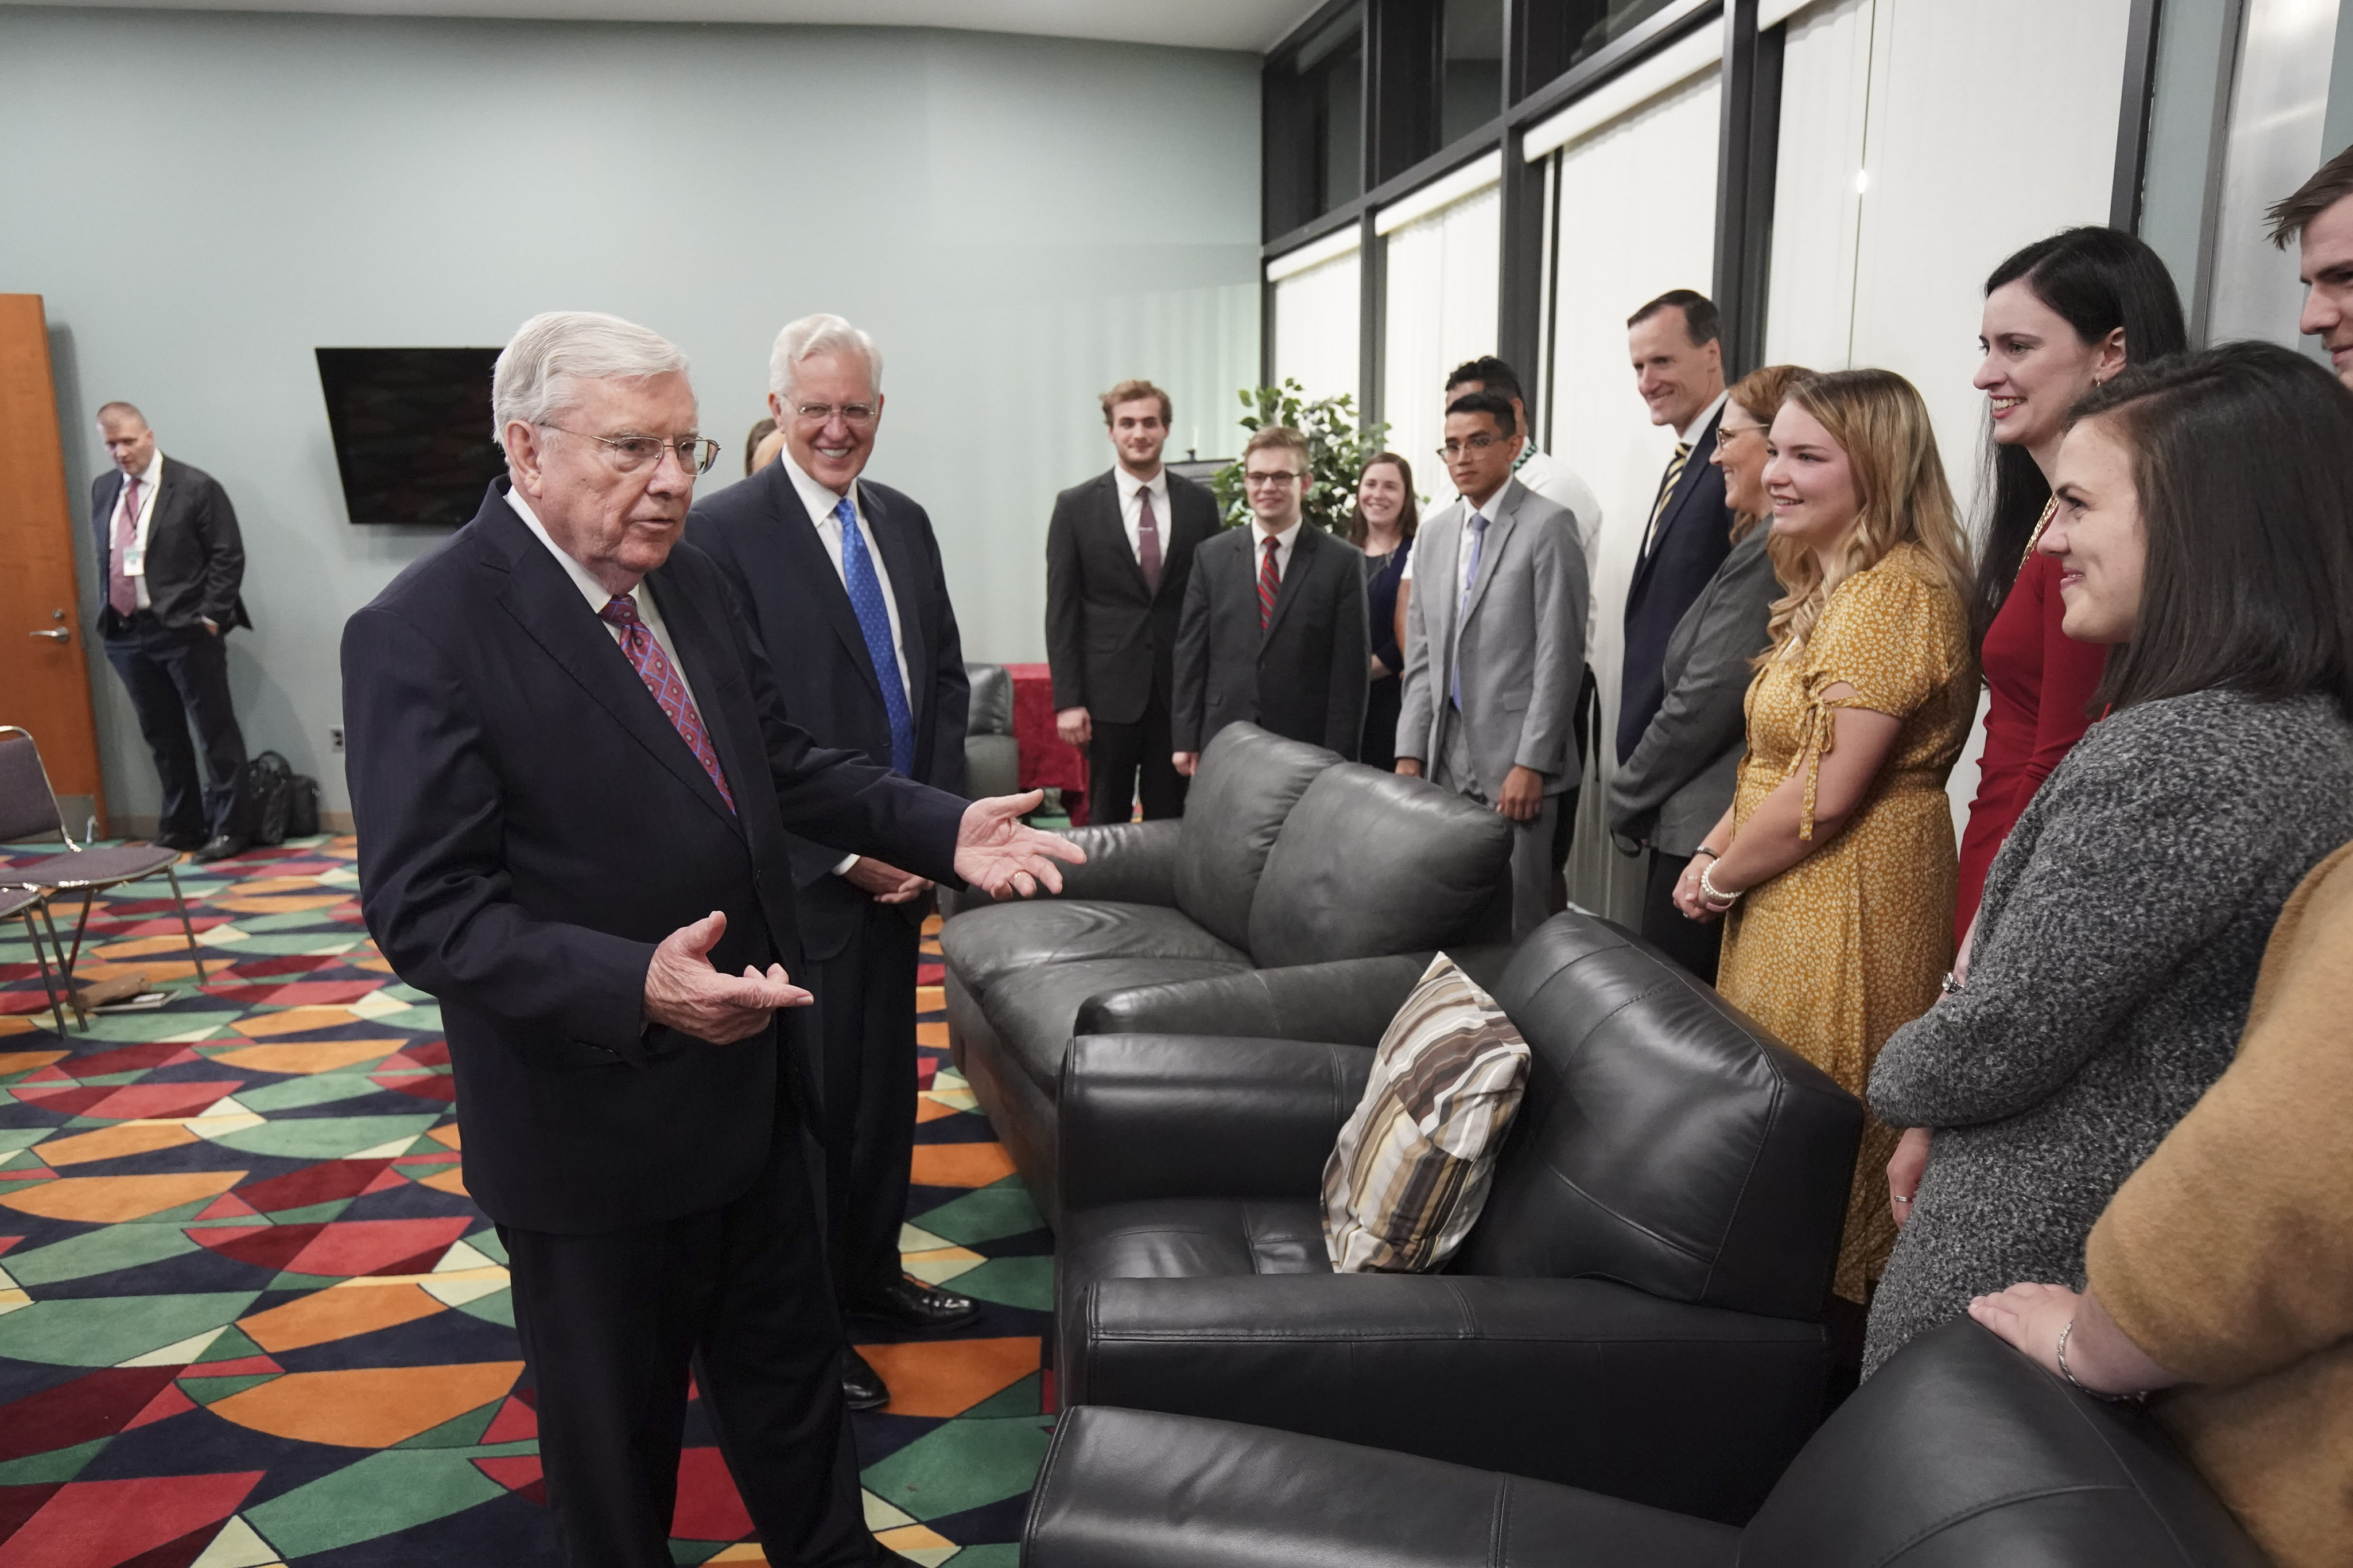 President M. Russell Ballard, acting president of the Quorum of the Twelve Apostles of The Church of Jesus Christ of Latter-day Saints, and Elder D. Todd Christofferson, of the Quorum of the Twelve Apostles, meet with youth in Worcester, Massachusetts, on Sunday, Oct. 20, 2019.